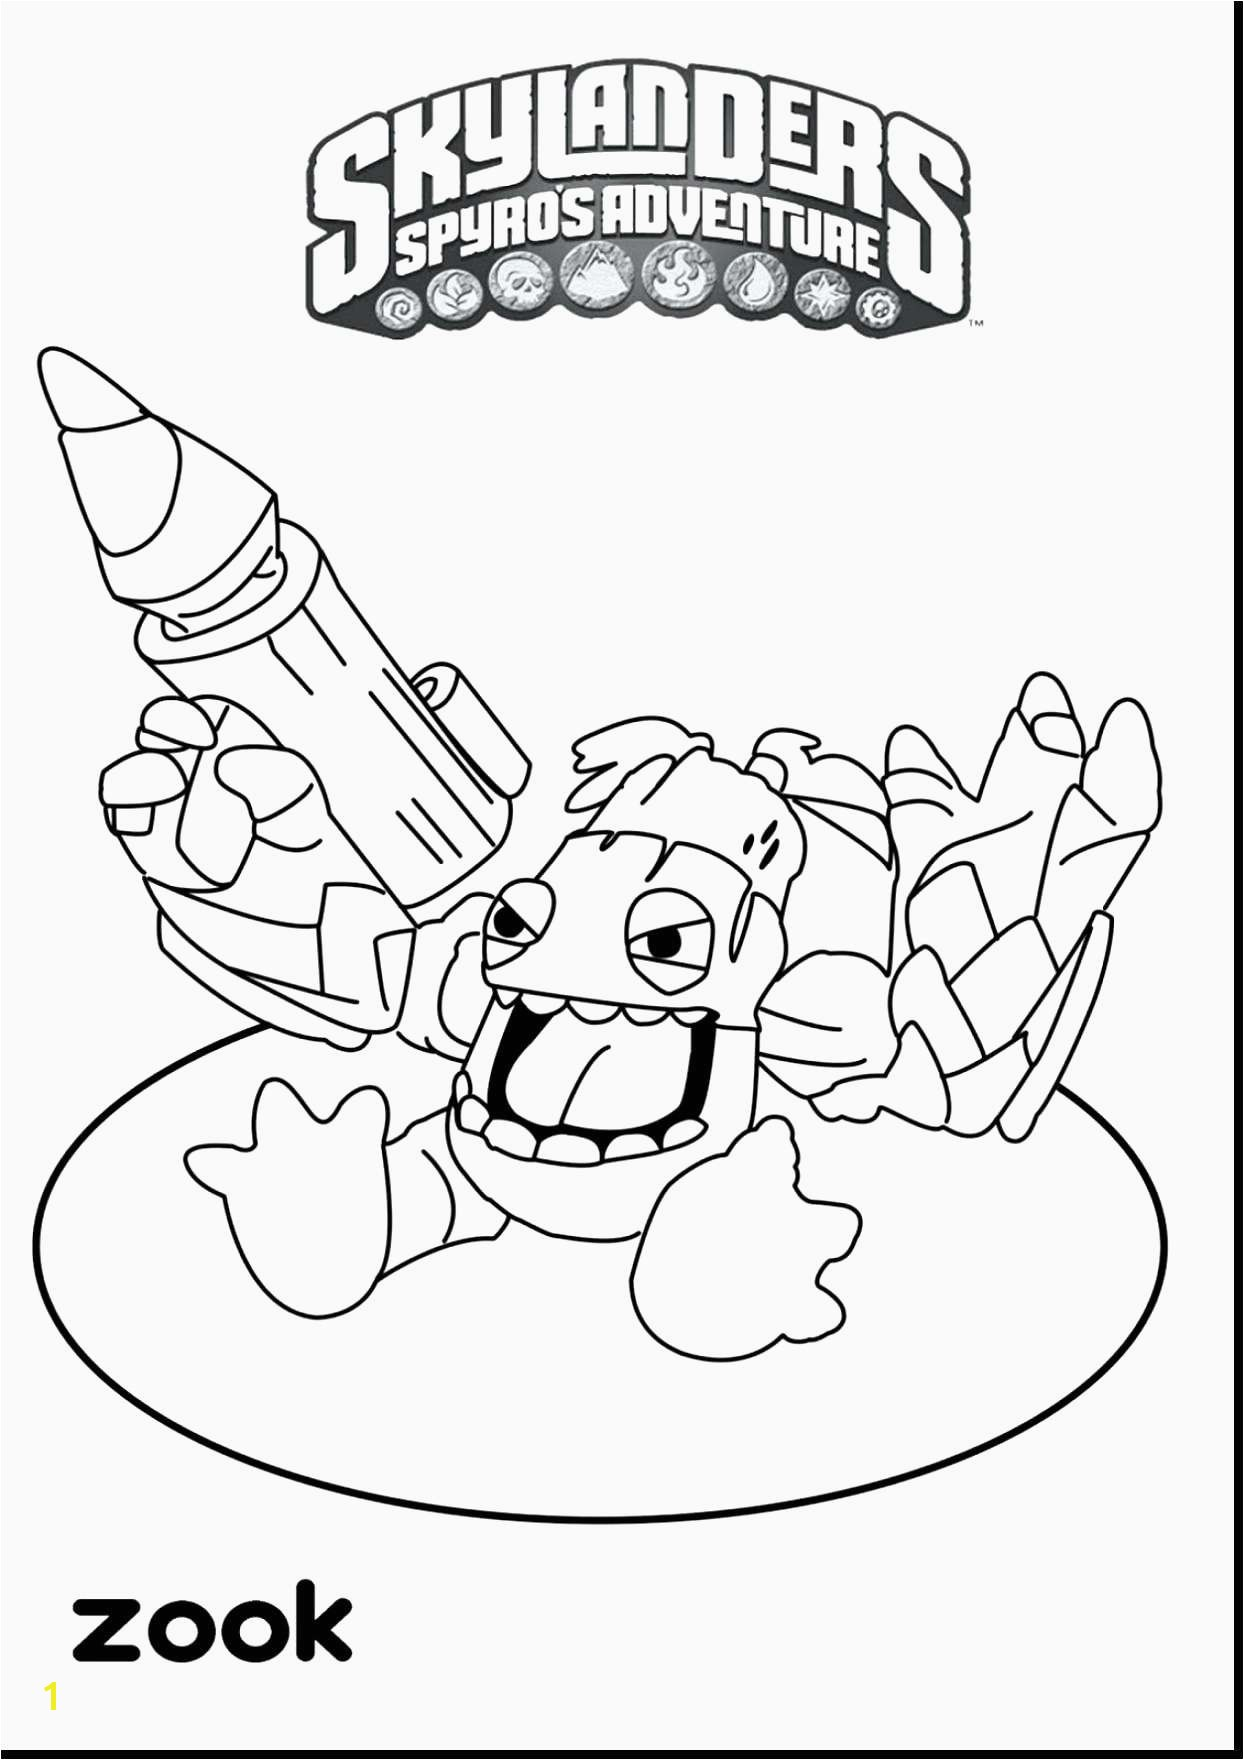 Winnie the Pooh Fall Coloring Pages Winnie the Pooh Fall Coloring Pages Winnie the Pooh Christmas